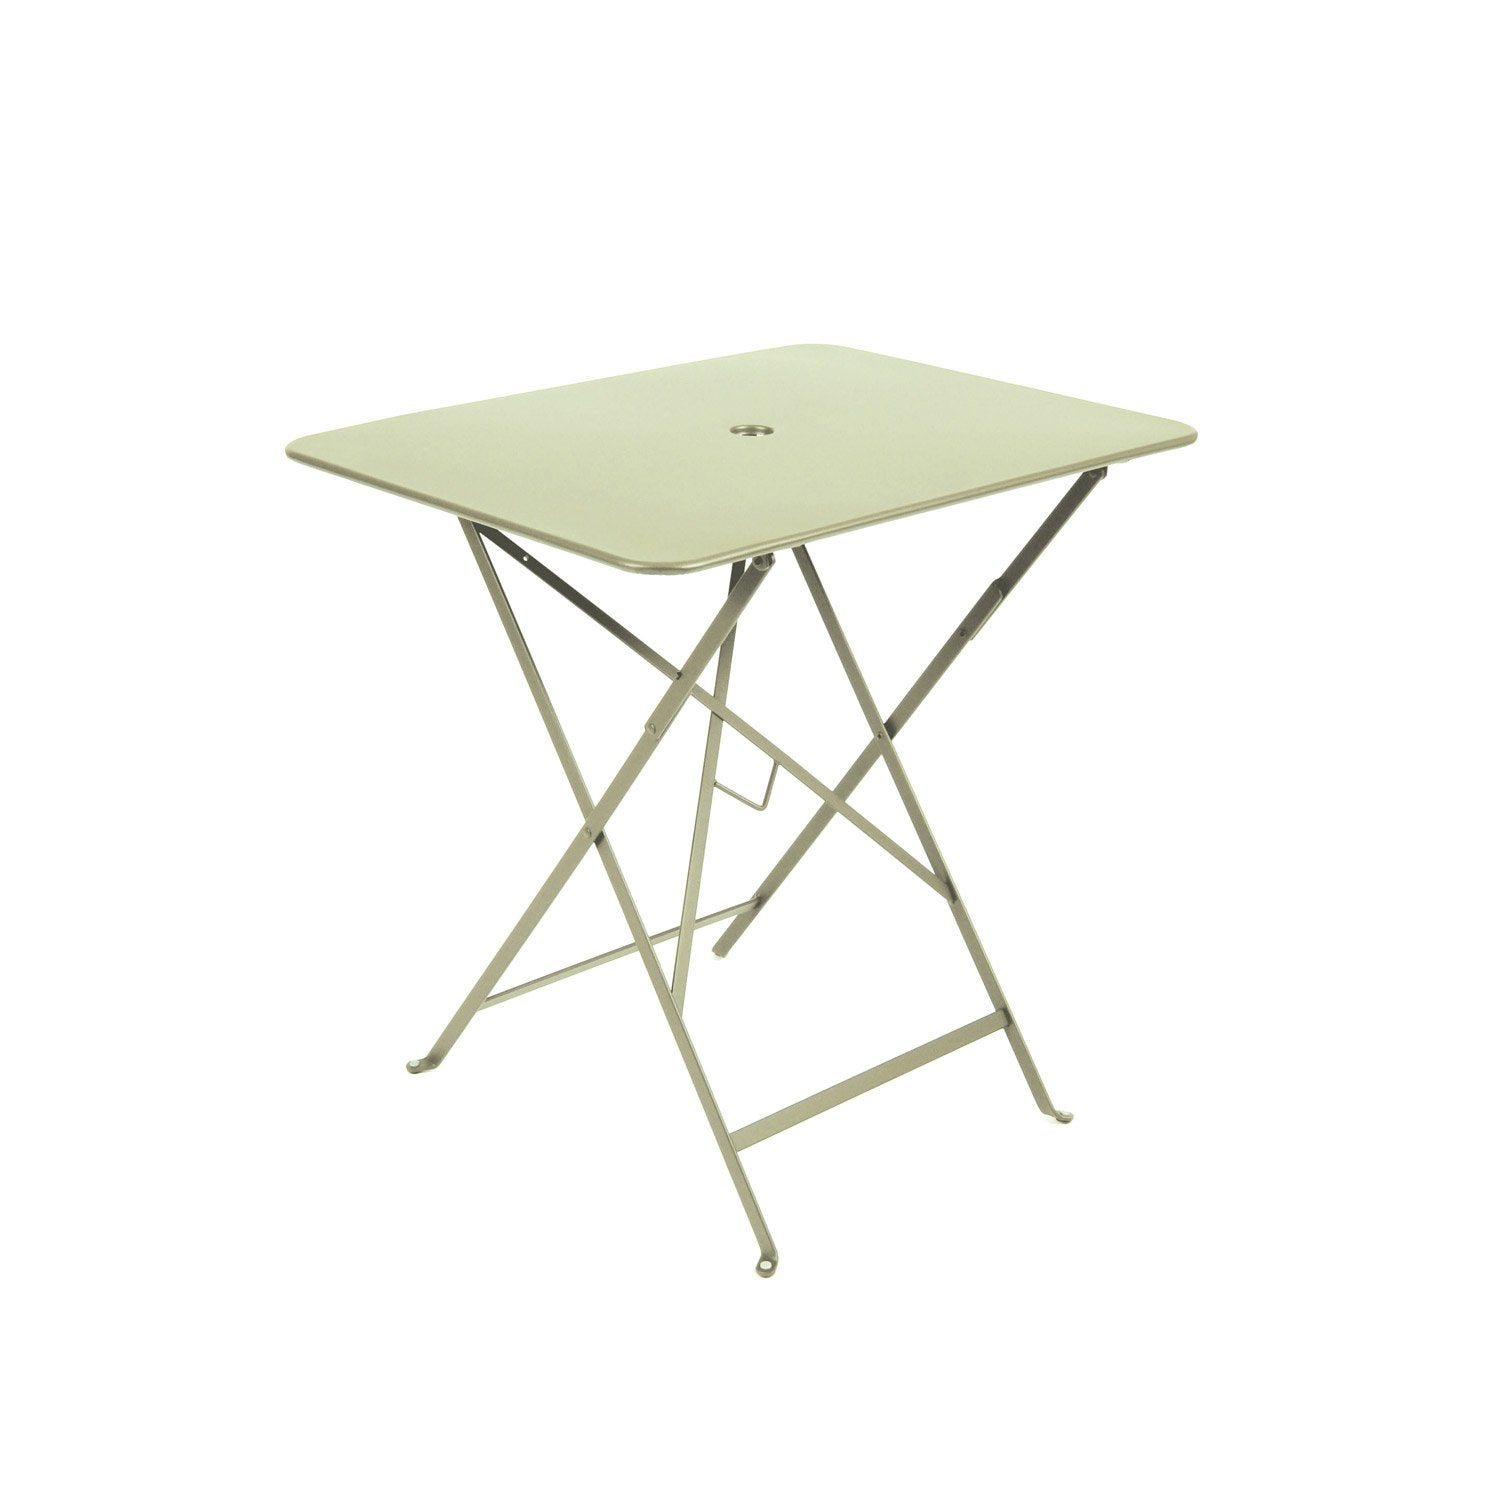 Table de jardin fermob bistro rectangulaire tilleul for Fermob table de jardin